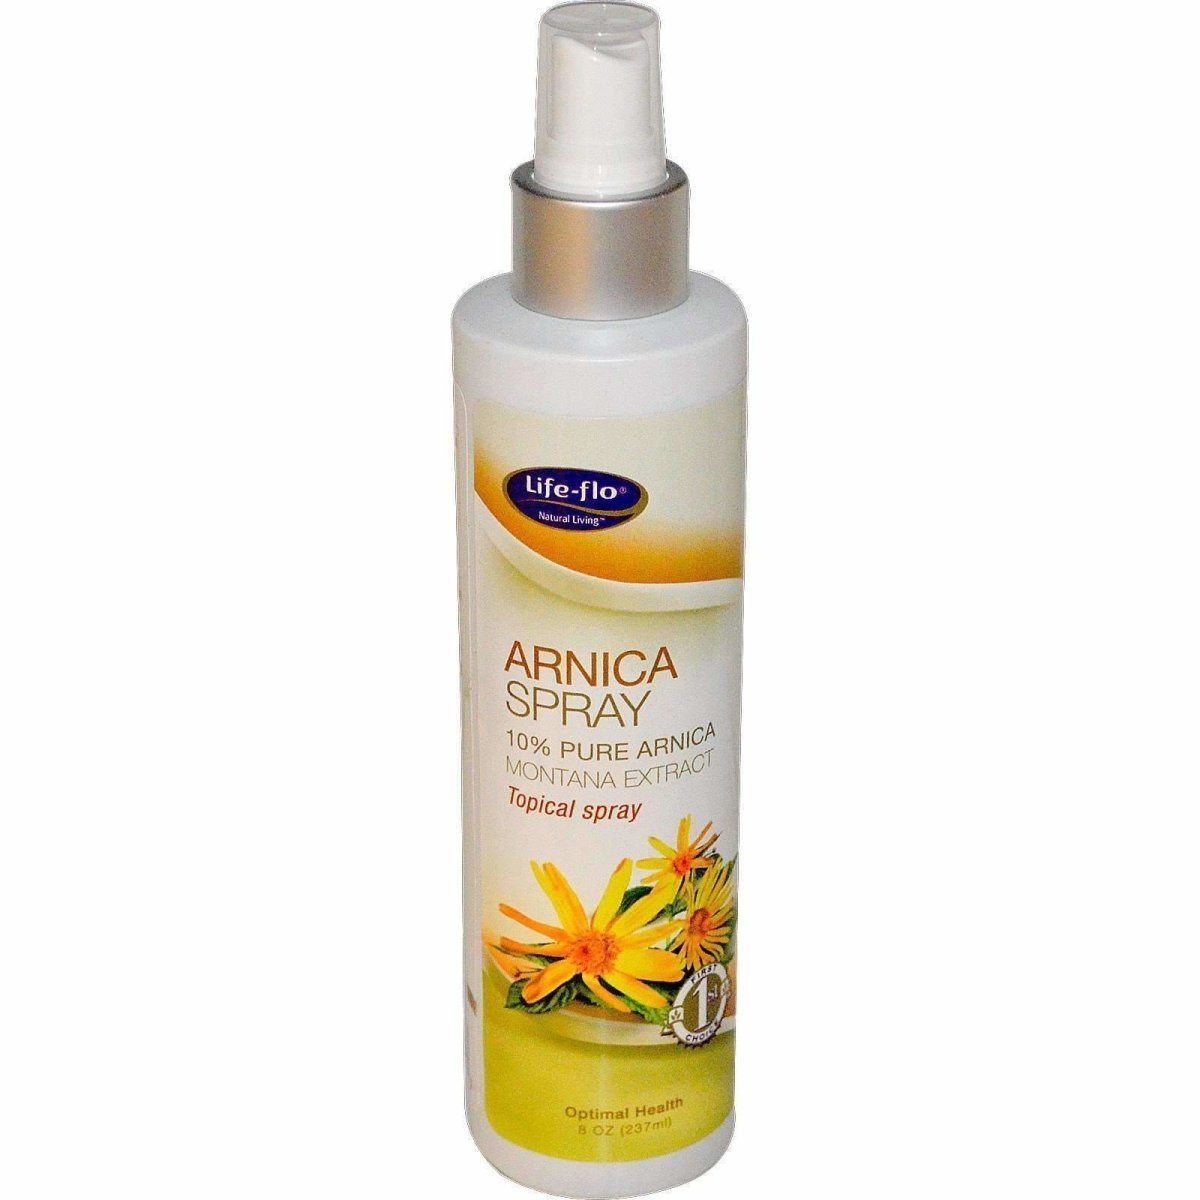 Arnica Spray 100% Pure Arnica 8 Oz